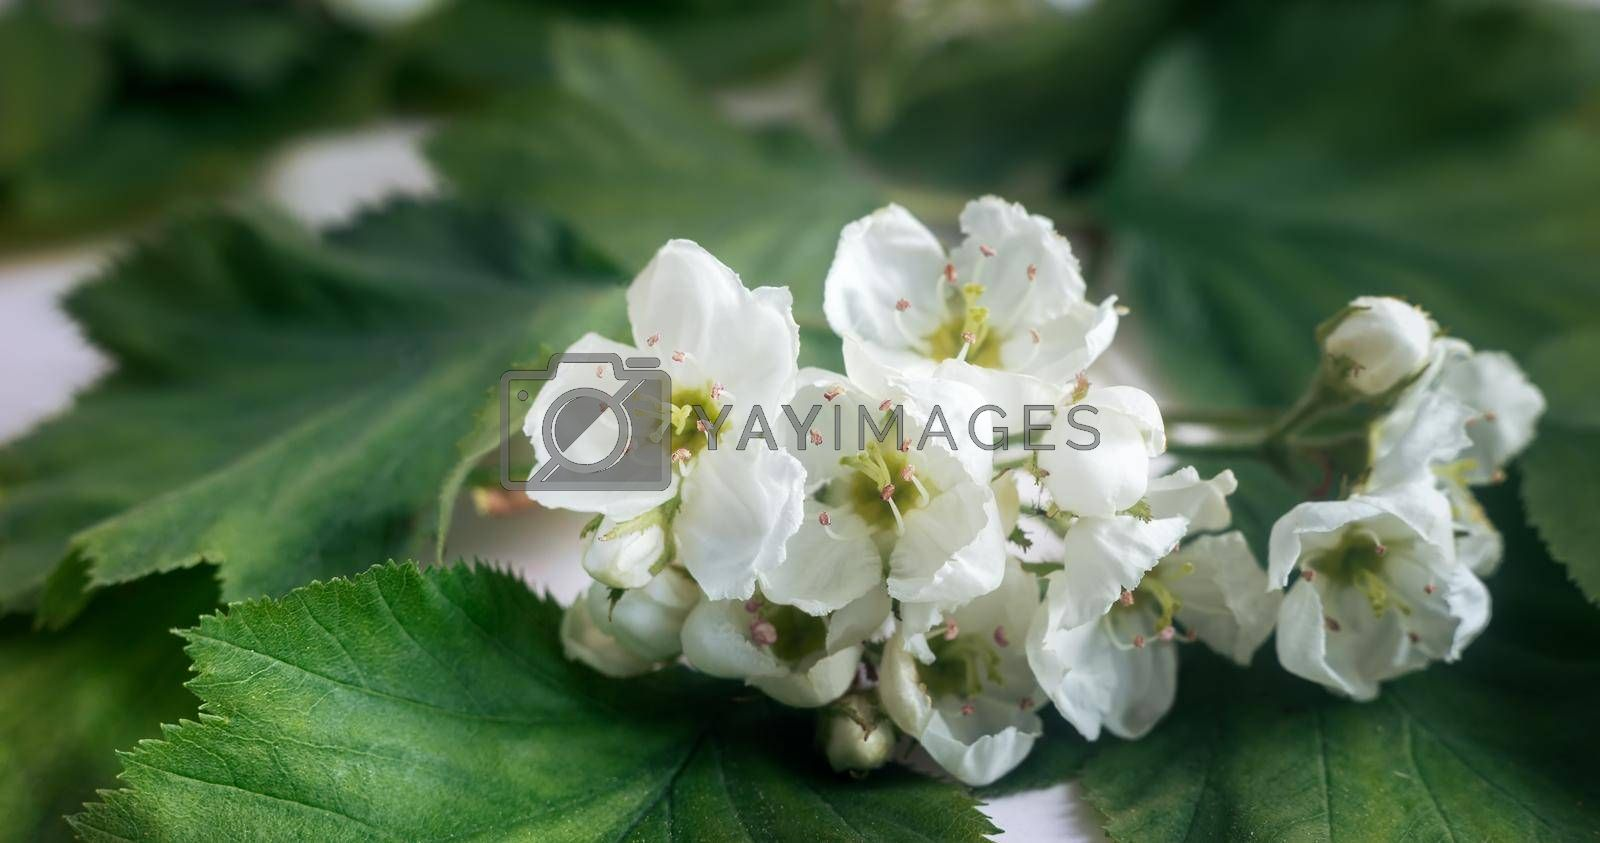 Flowers of common hawthorn with tiny white flowers in spring on the background of foliage. Hawthorn fruit is a medicinal product